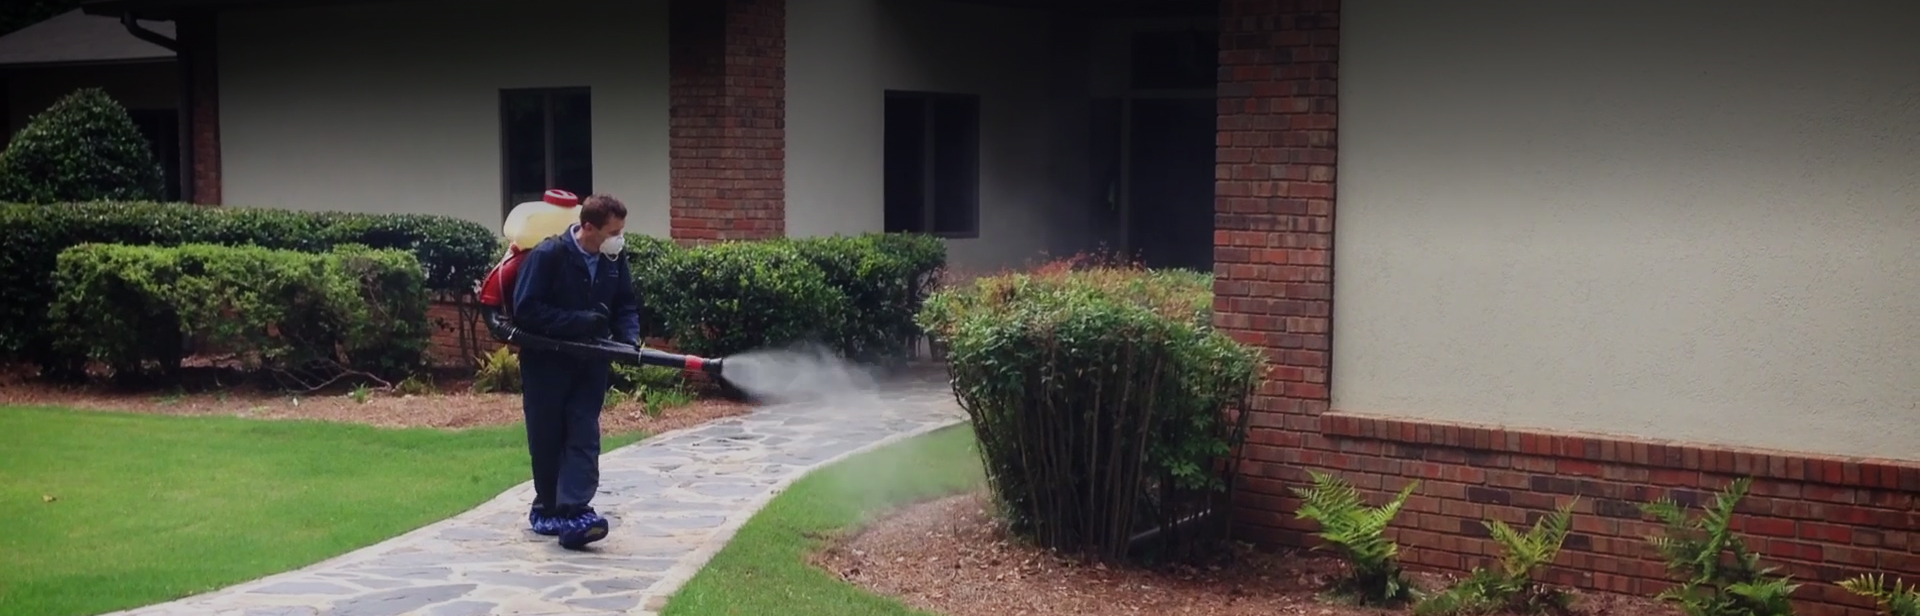 Mosquito Professional Spraying | Any Pest Inc.